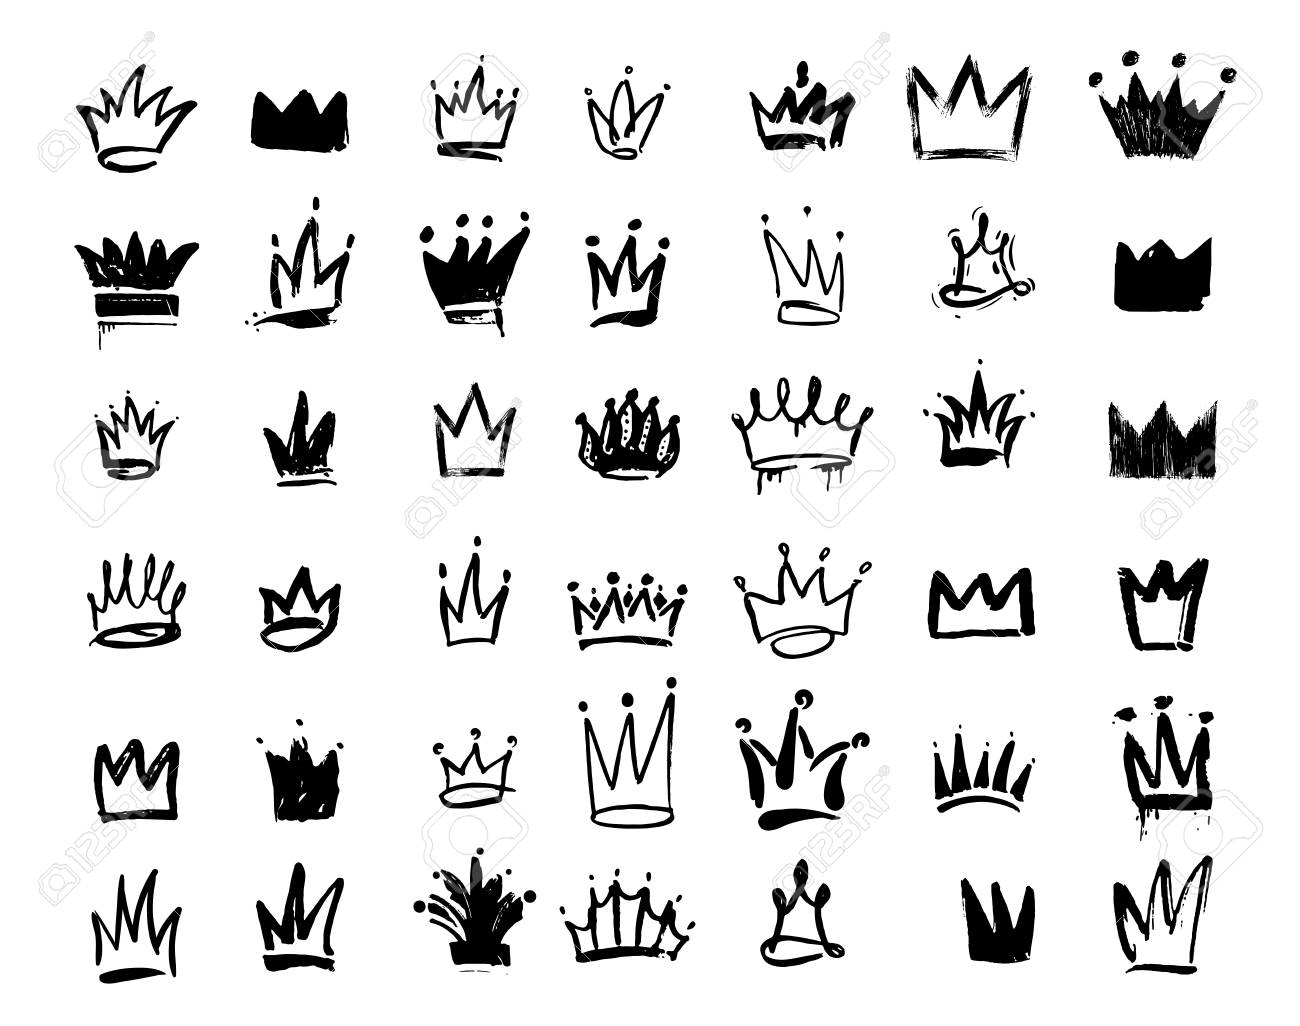 Set of Crown logo graffiti icon  Drawing by hand black elements